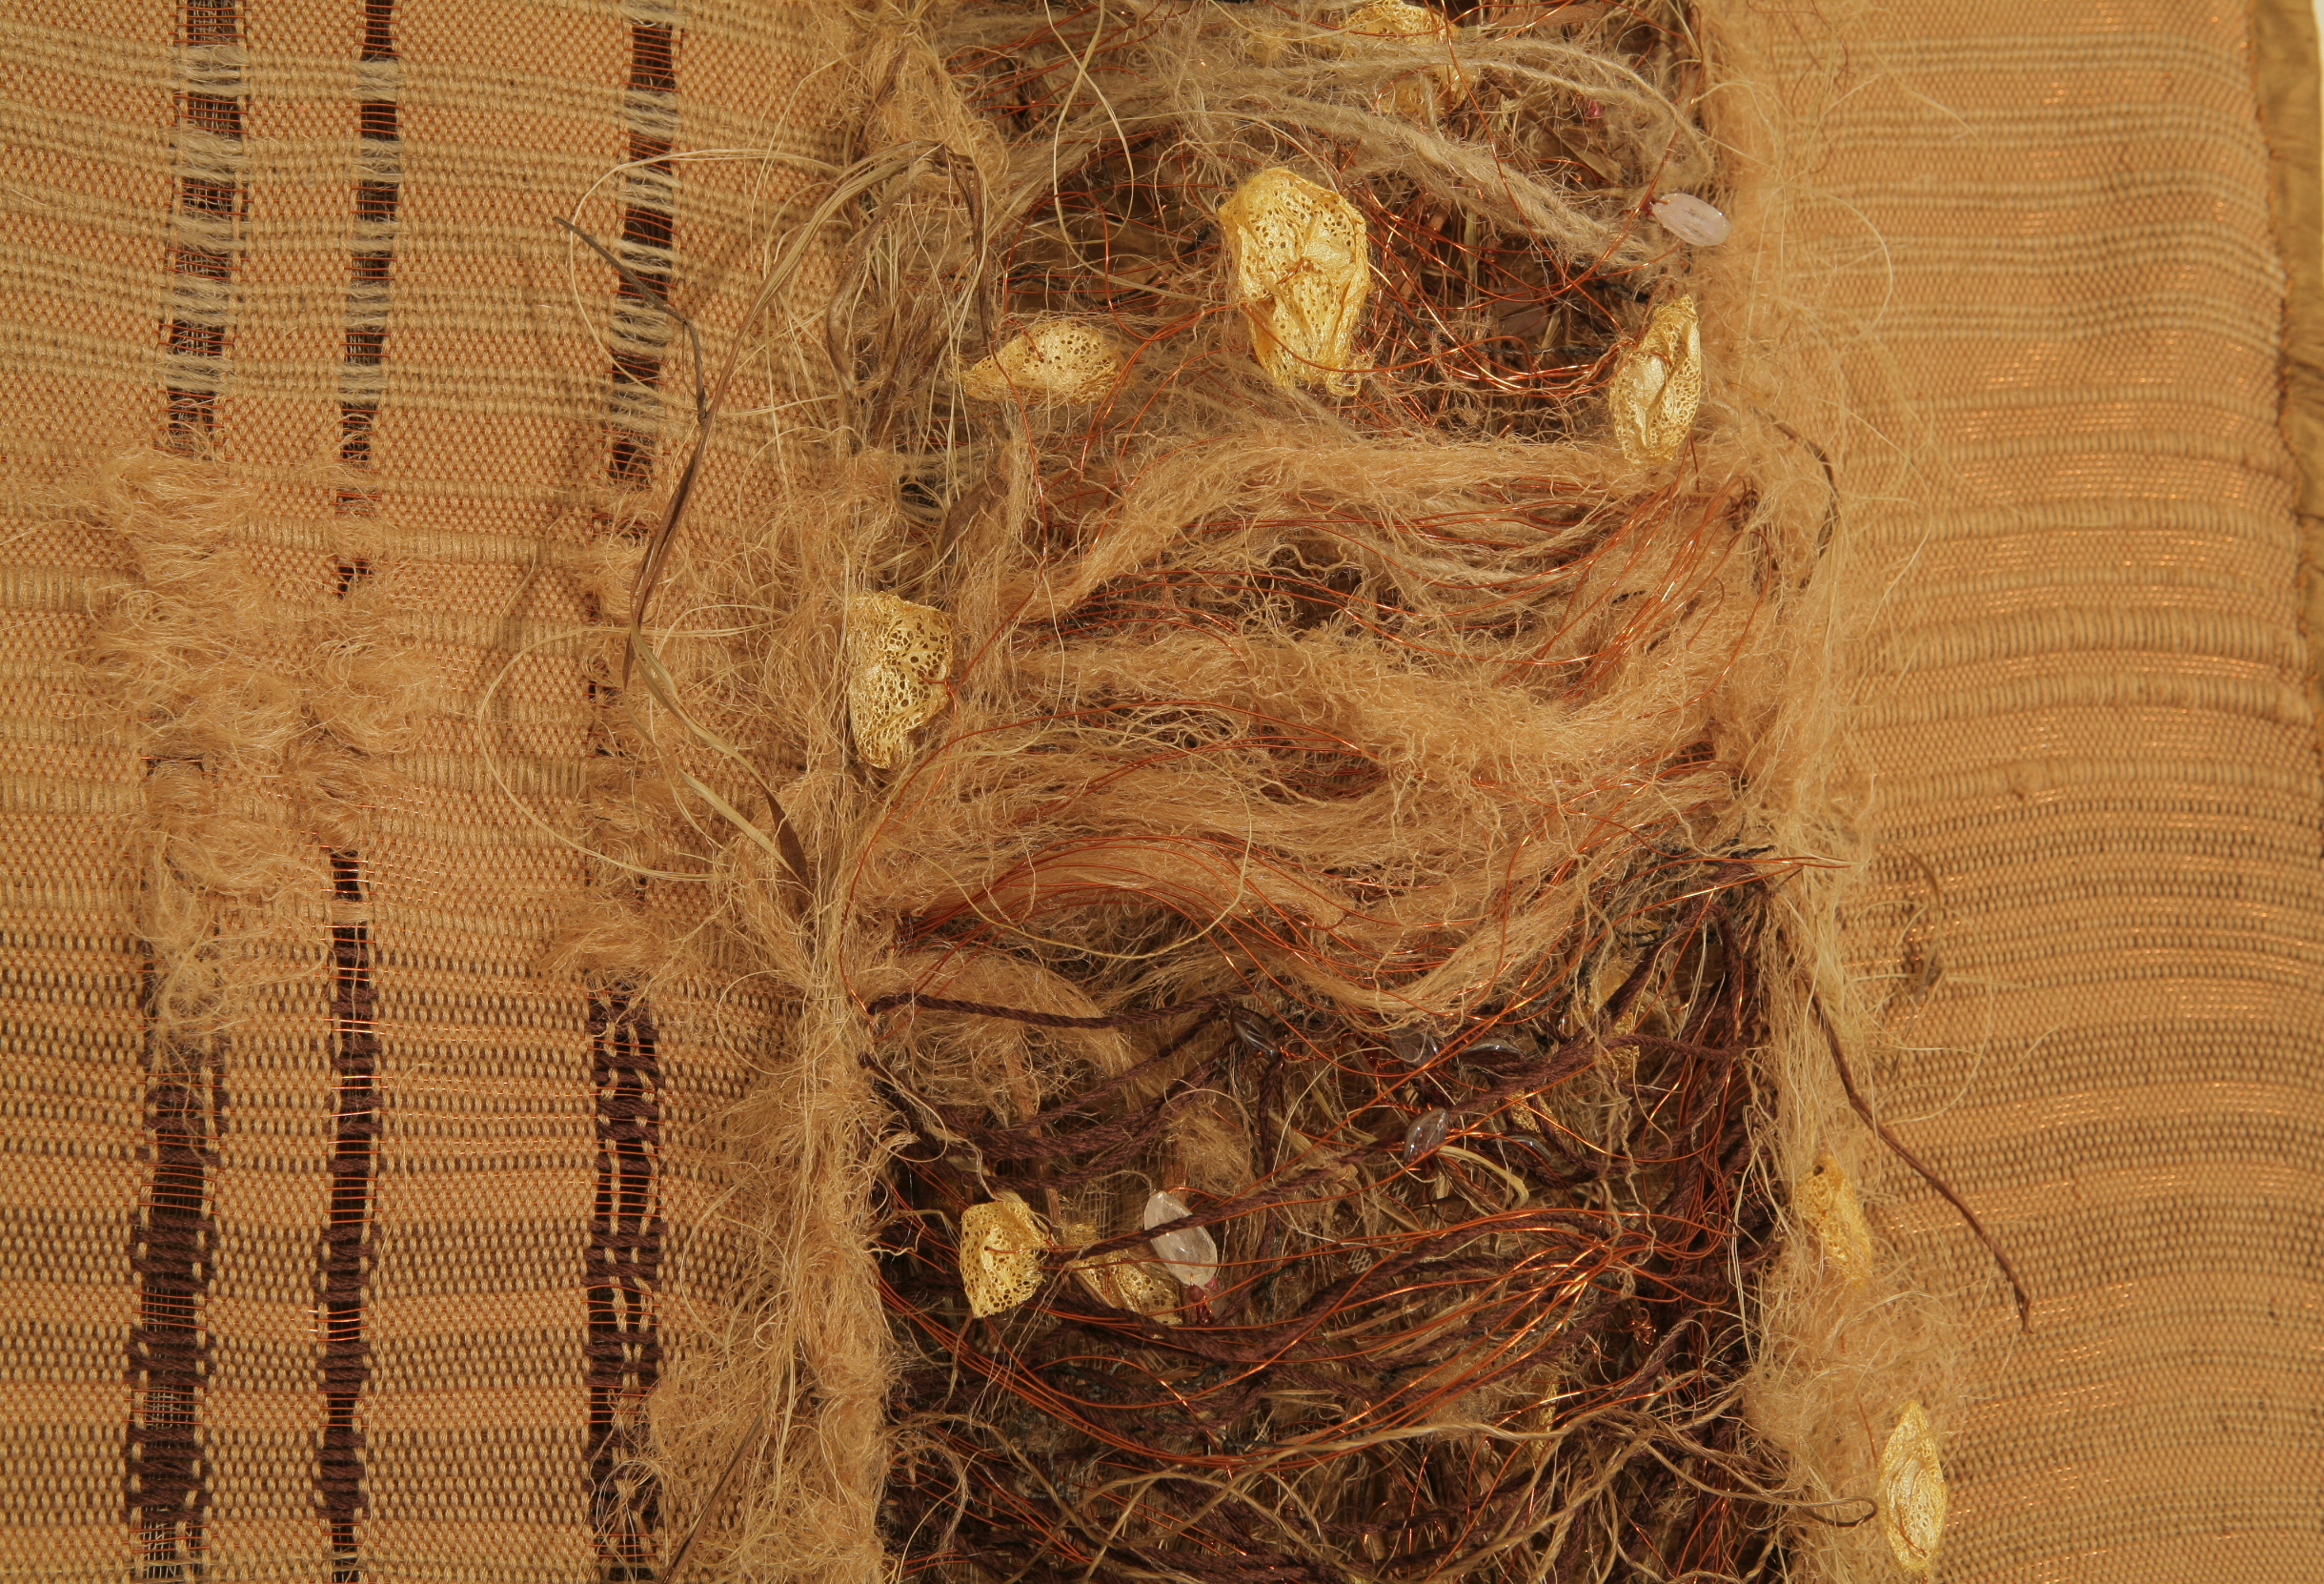 """Bramble:"" Bamboo, silk, copper and organic fibre. Handwoven on floor loom. Hand tied and stitched by Shelita Birchett Benash. 2007. 36""x118"". 2007."